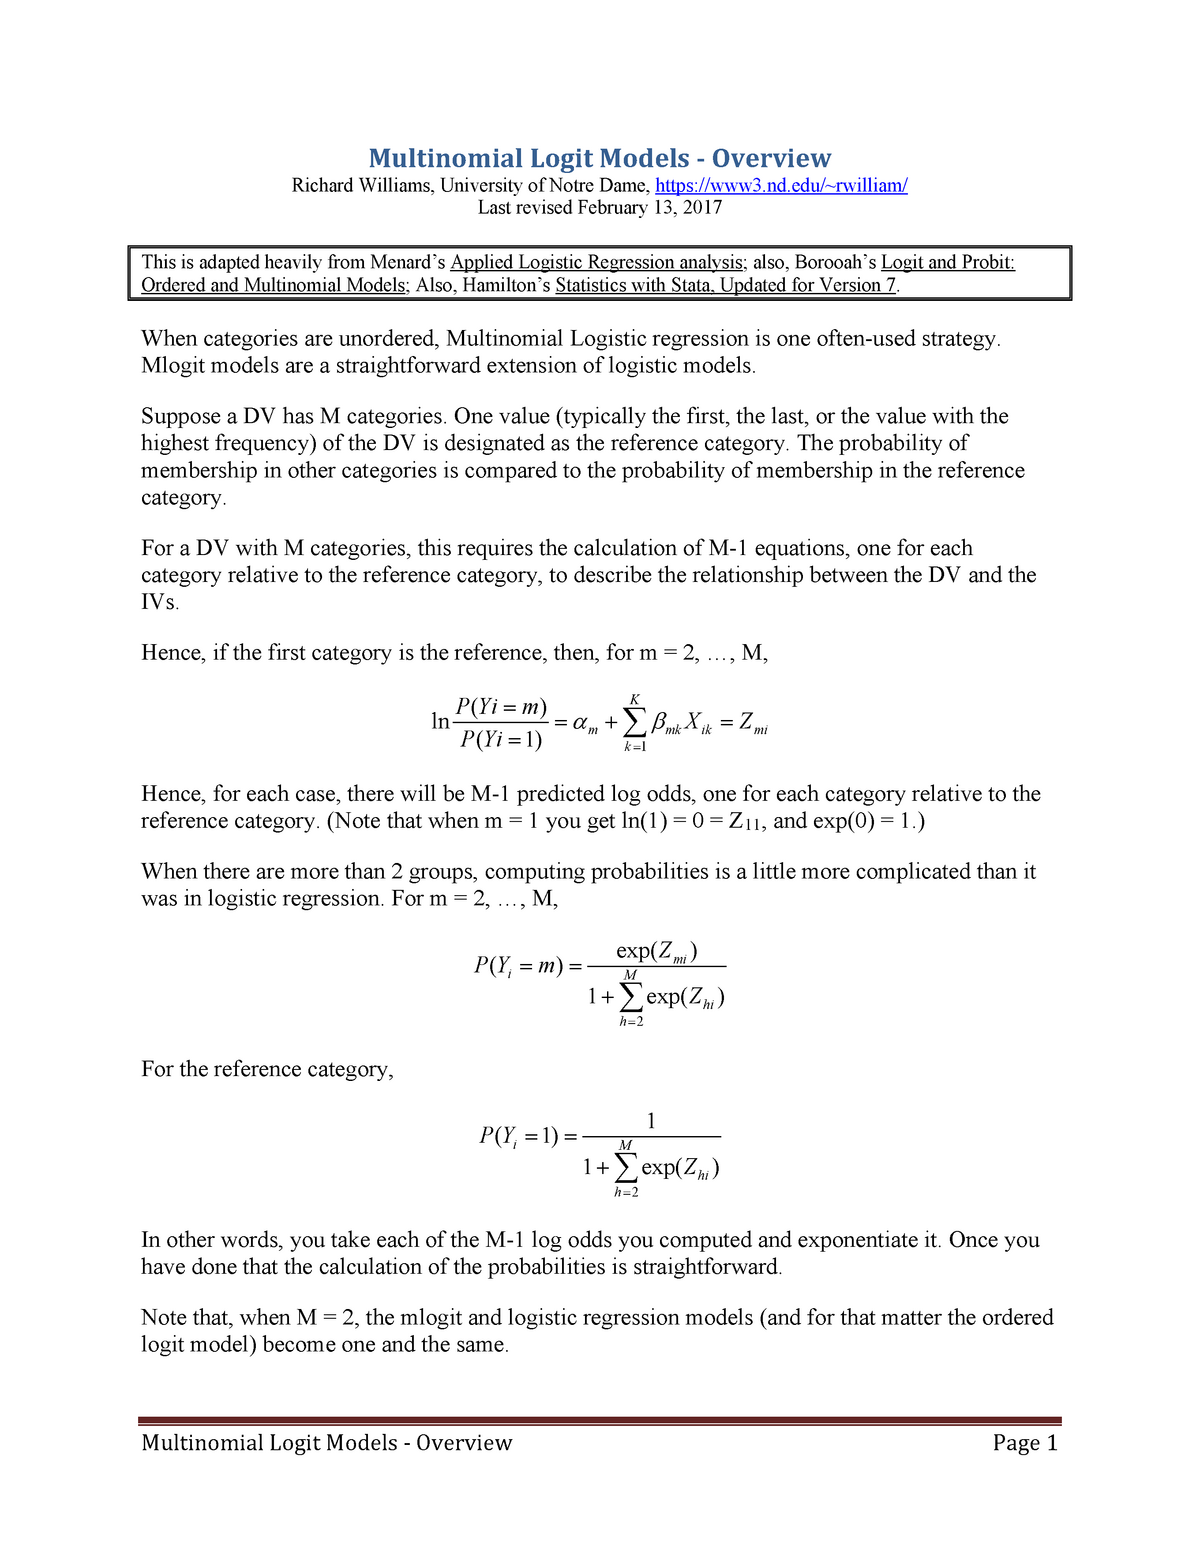 Multinomial Logit Models - Overview - Socio 73994